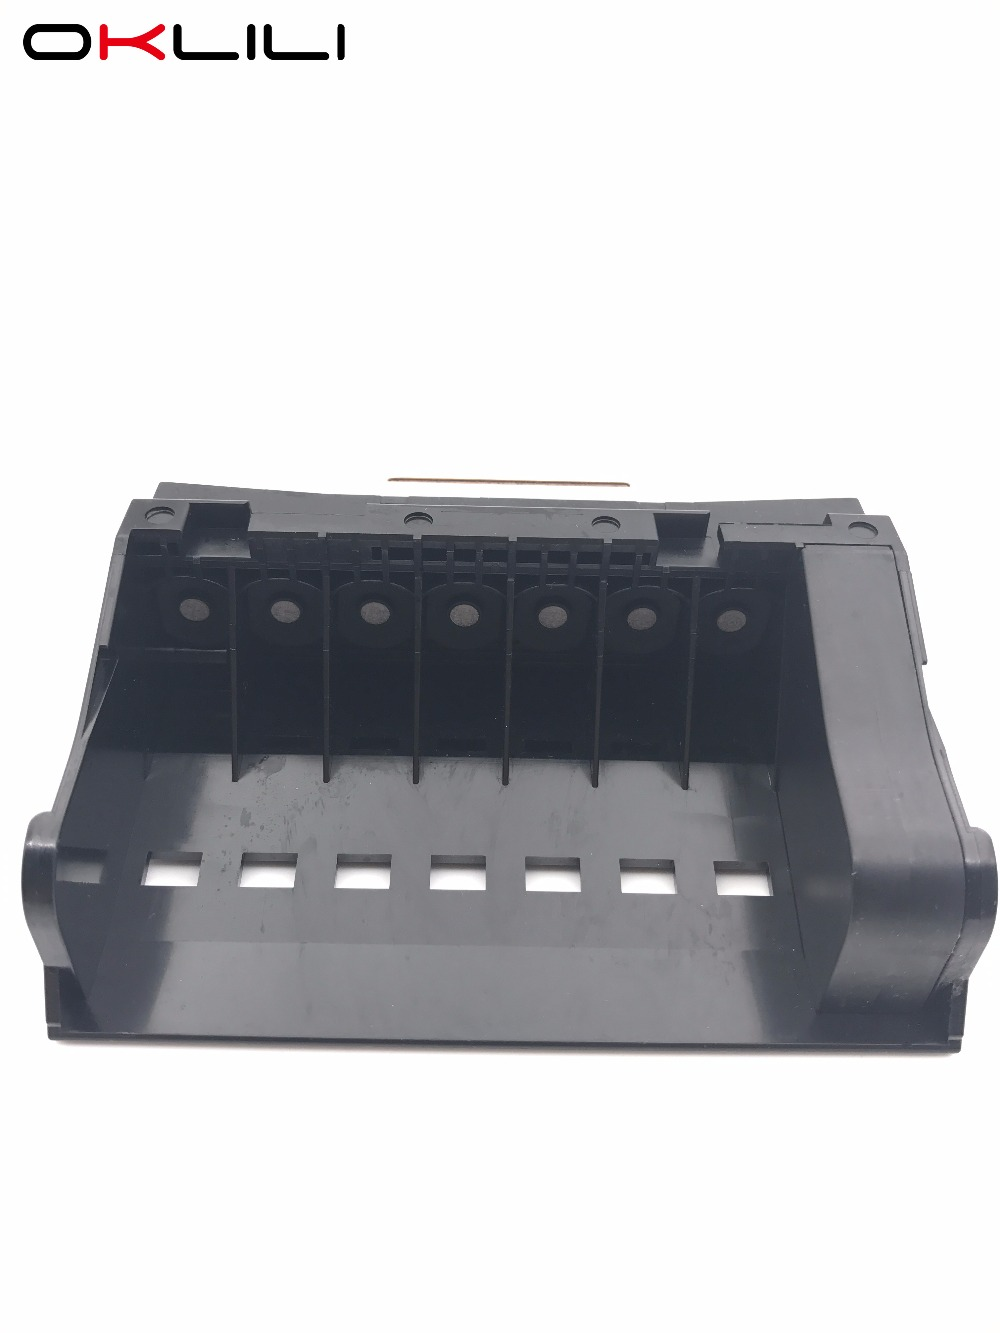 OKLILI ORIGINAL QY6-0053 QY6-0053-000 Printhead Print Head Printer Head for Canon PIXUS 990i i990 iP8100 qy6 0076 printhead print head printer head for canon pixus 9900i i9900 i9950 ip8600 ip8500 ip9910 pro9000 mark ii